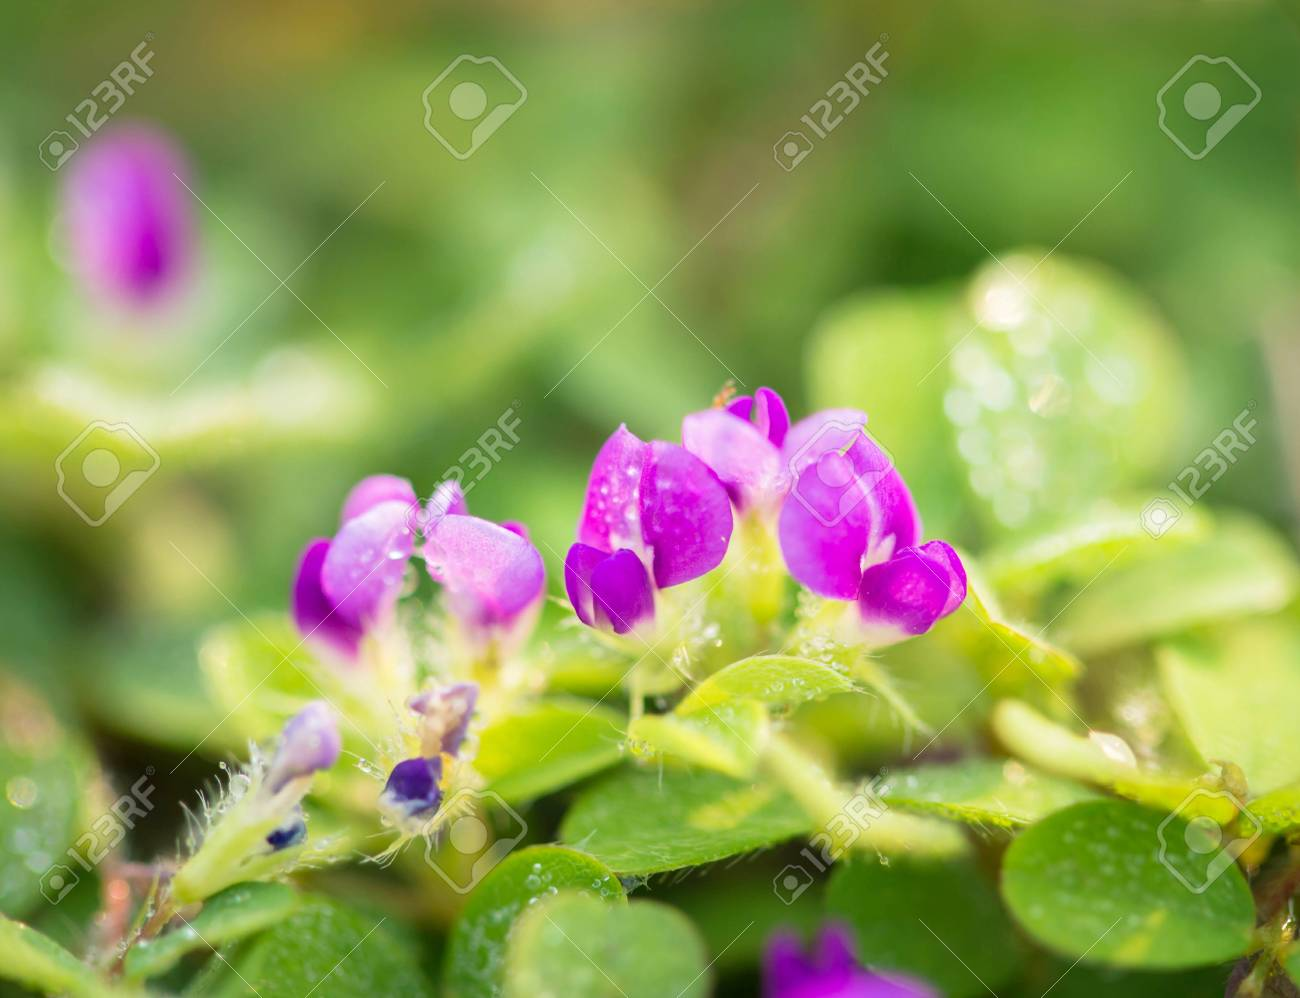 Small Purple Flowers On Grass With Dew Drop In The Morning Stock